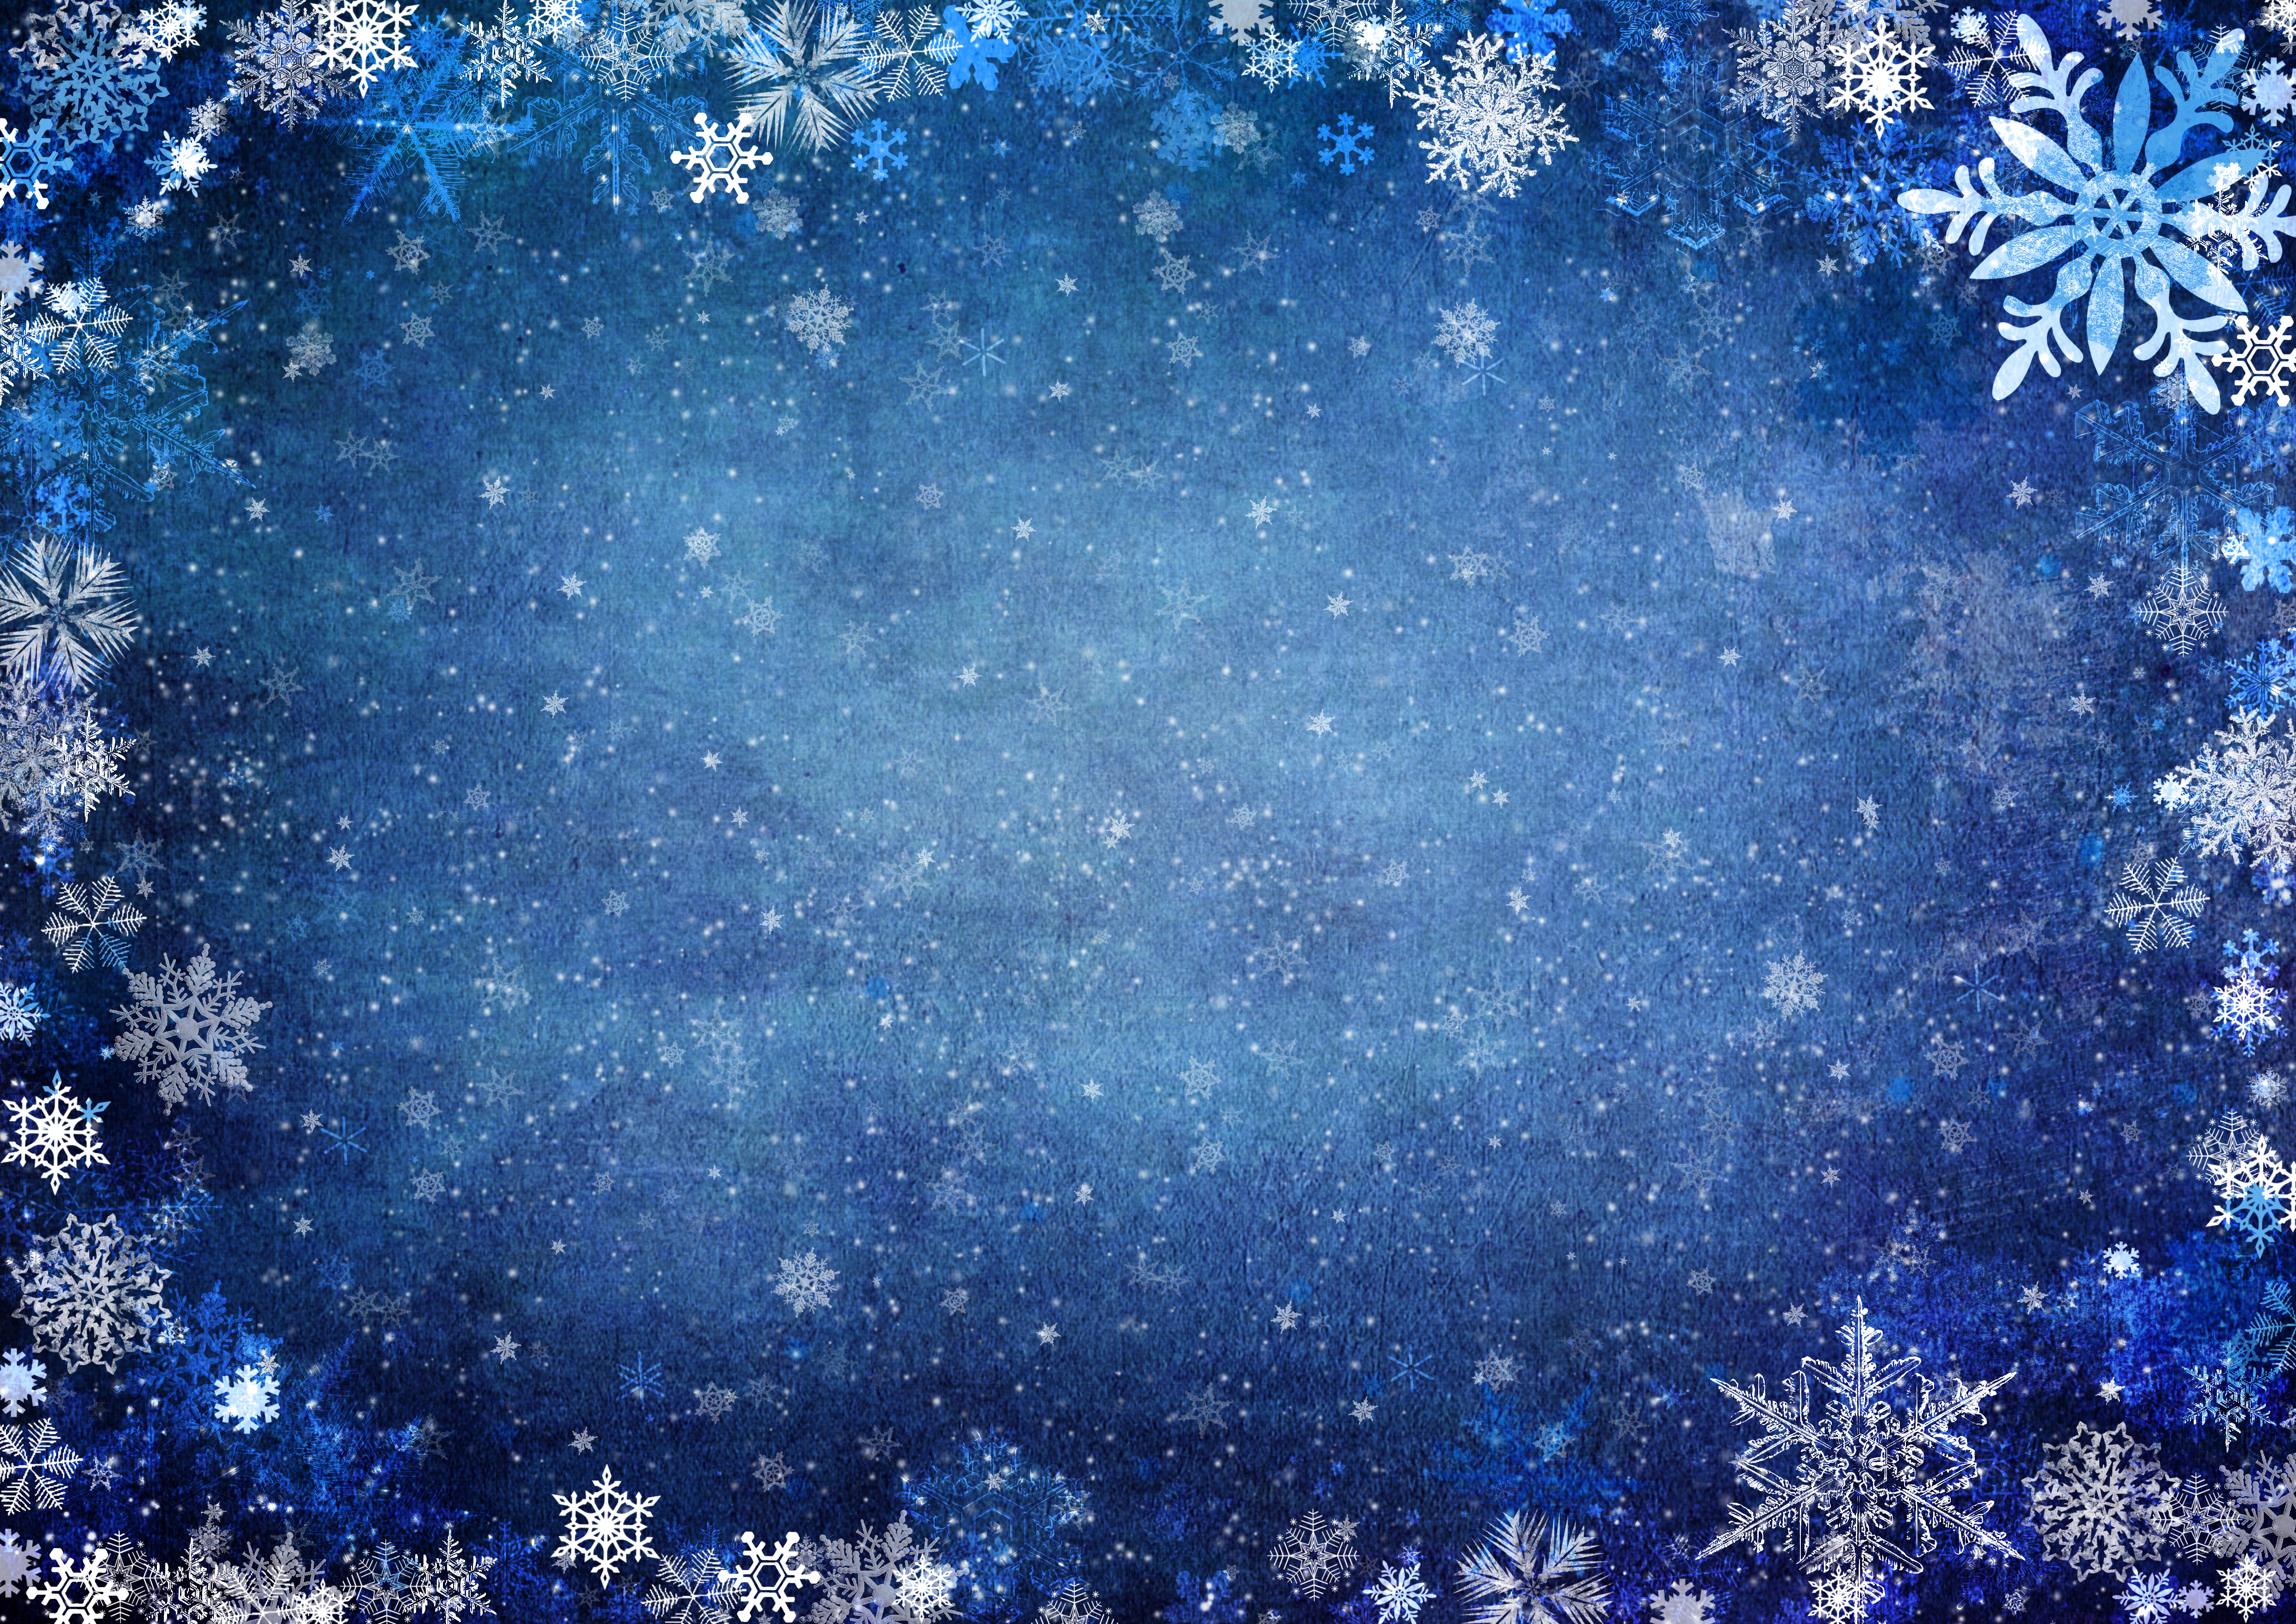 Snowflake 4k ultra hd wallpaper and background image 4961x3508 artistic snowflake wallpaper voltagebd Choice Image